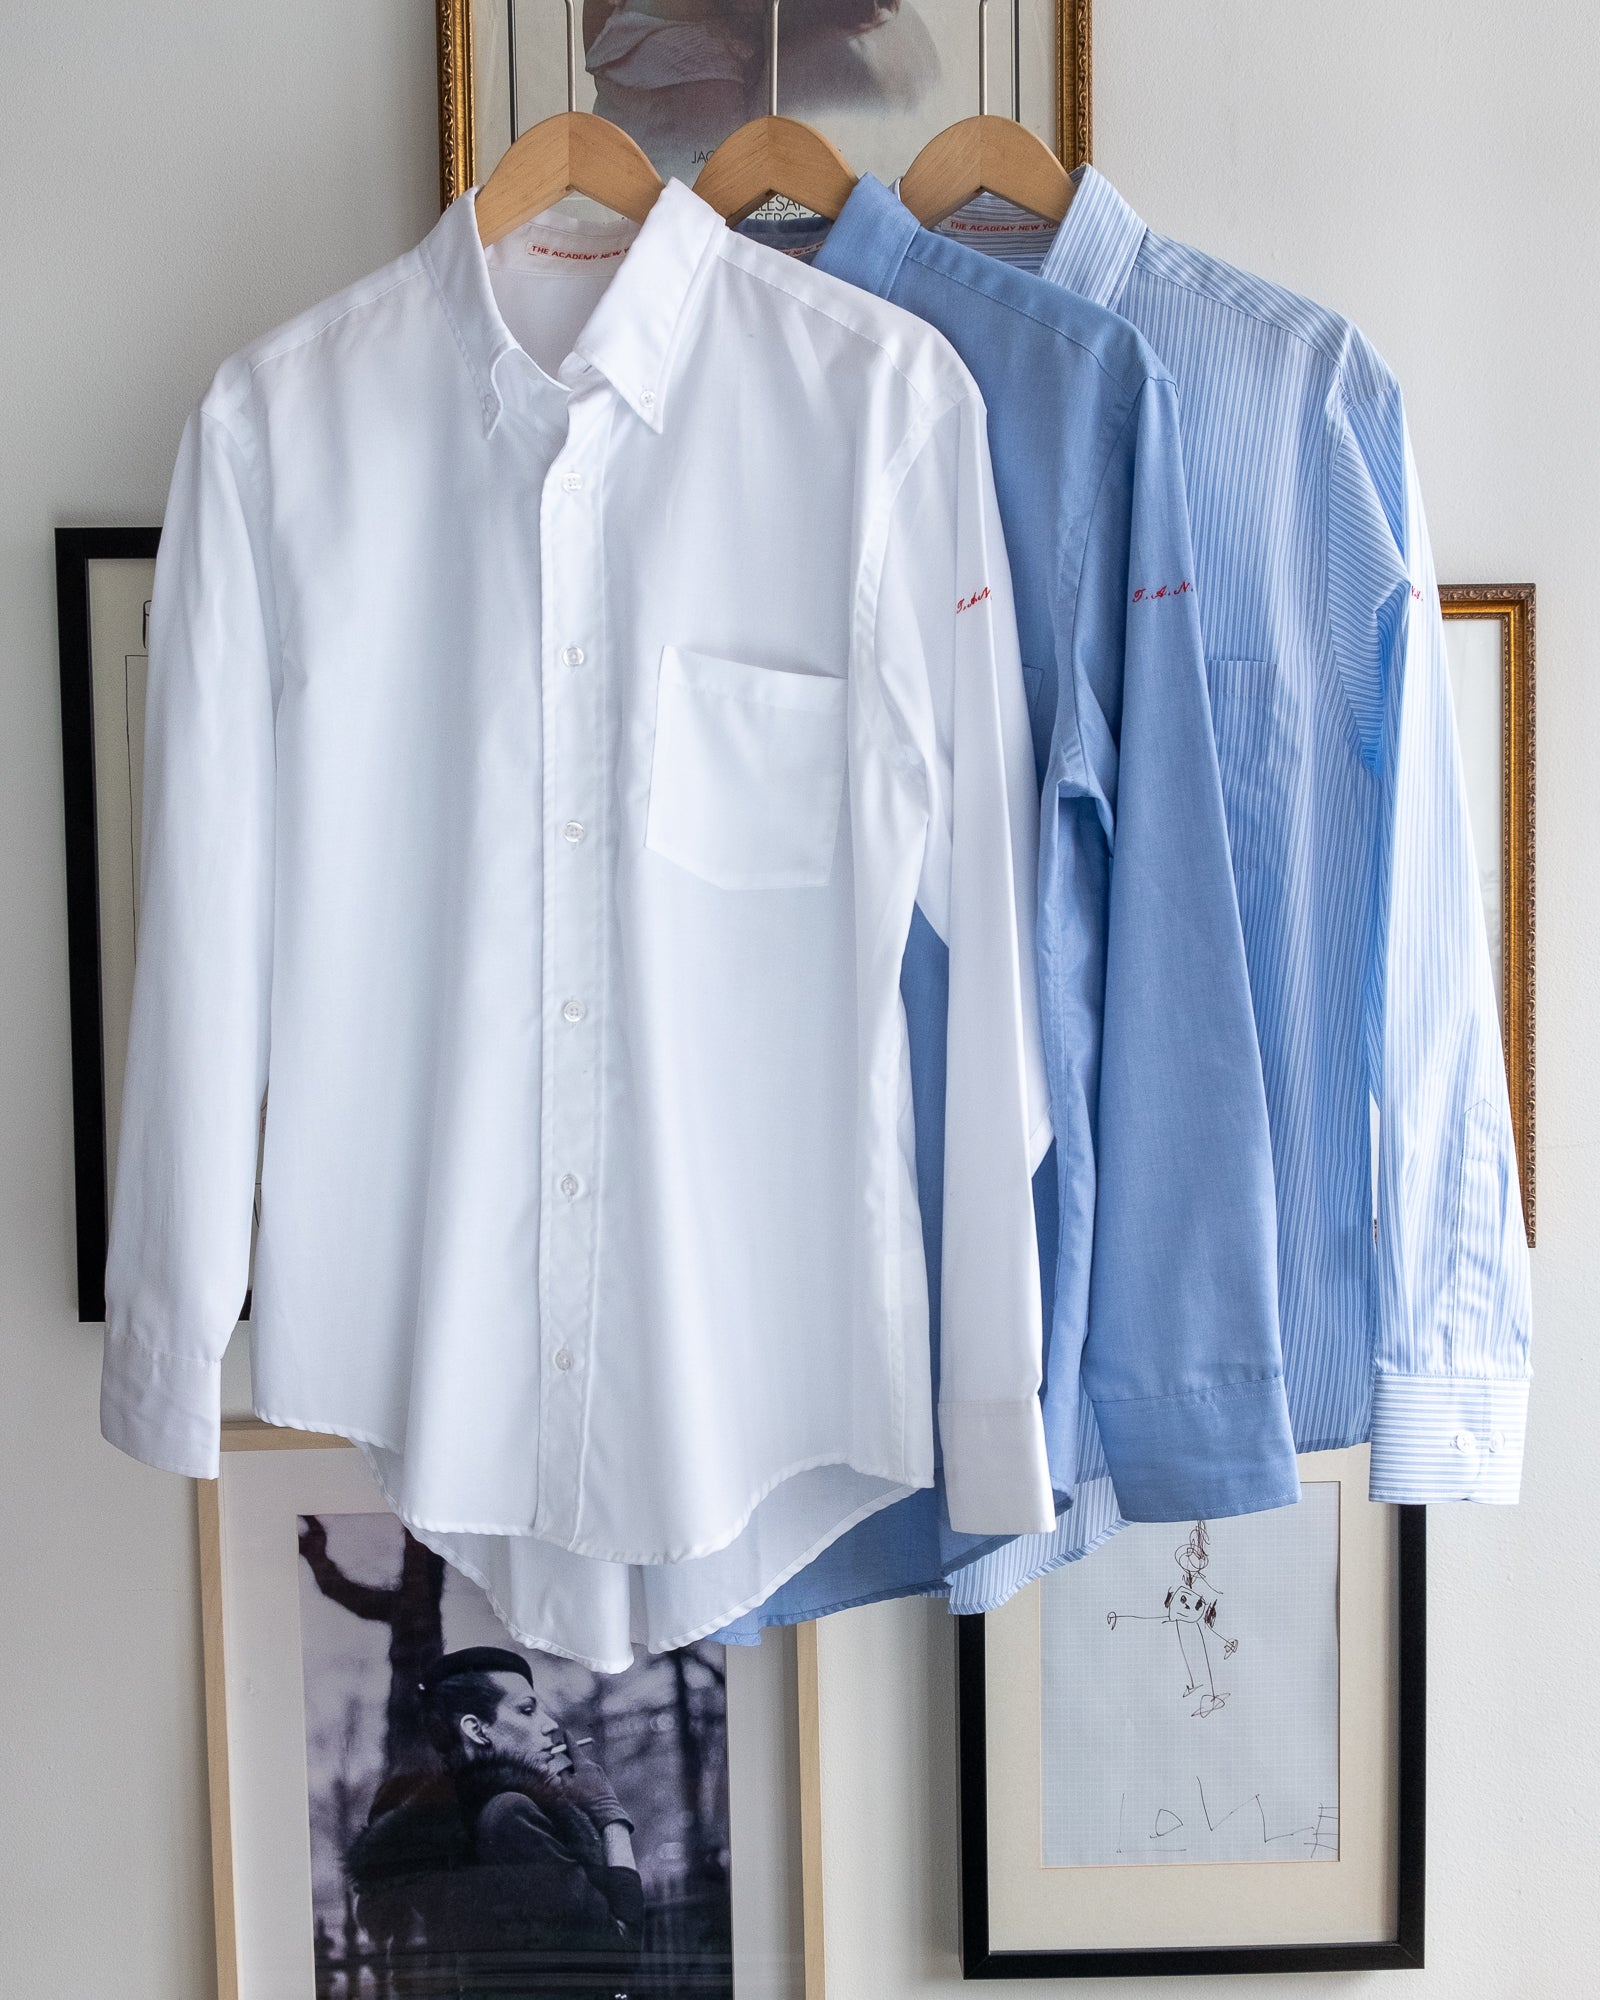 The Academy New York. Three color ways of the oversized button down shirt.